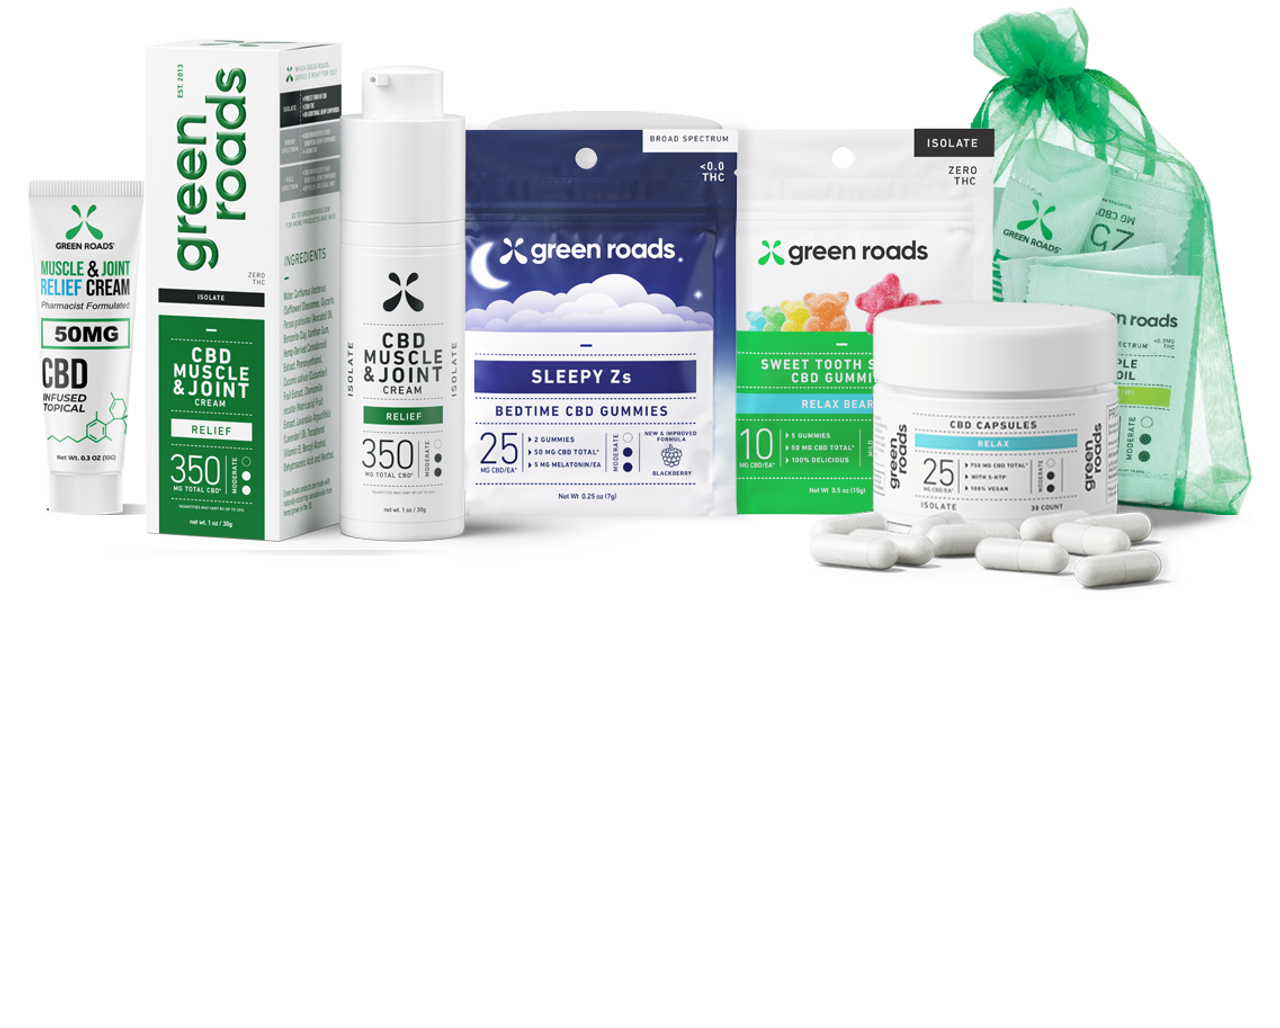 HERO'S CBD BUNDLE